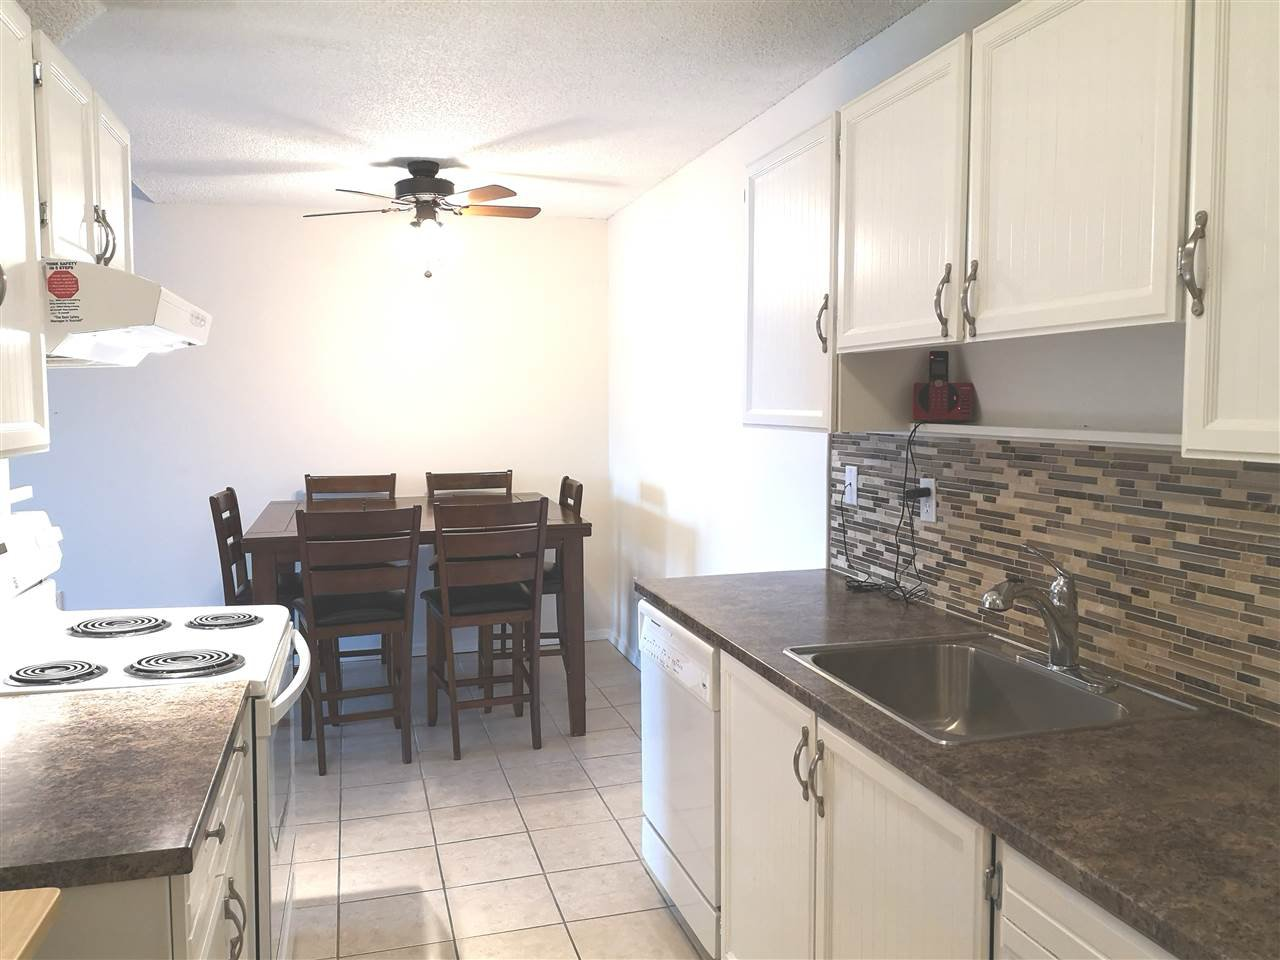 Updated cabinets, backsplash and counters